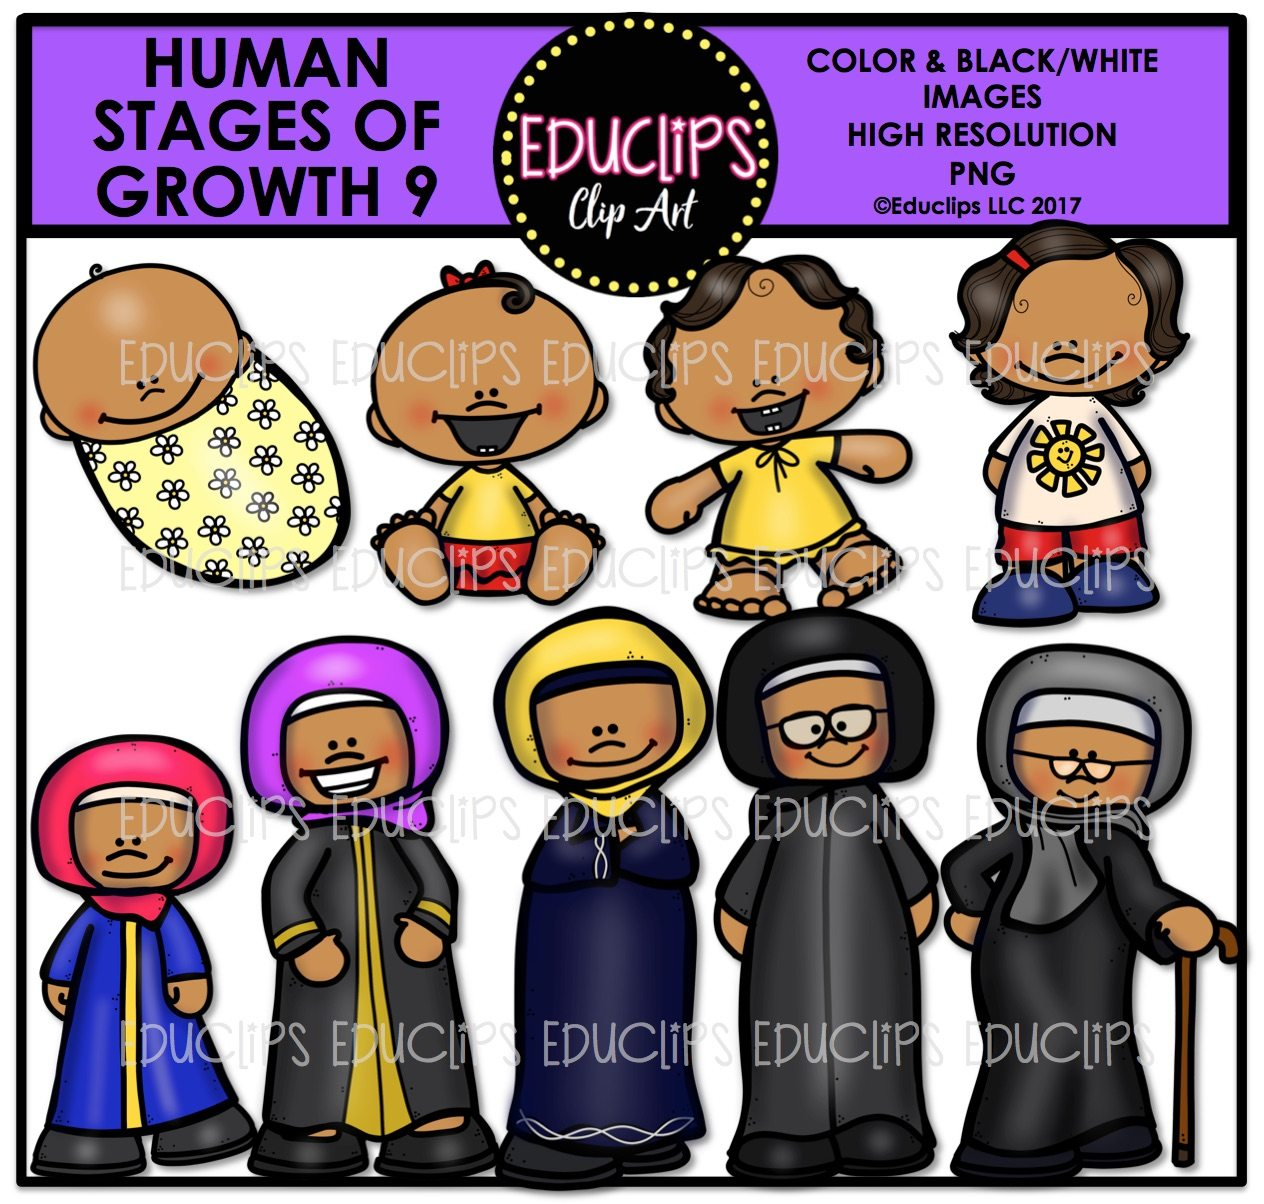 Human Stages Of Growth 9